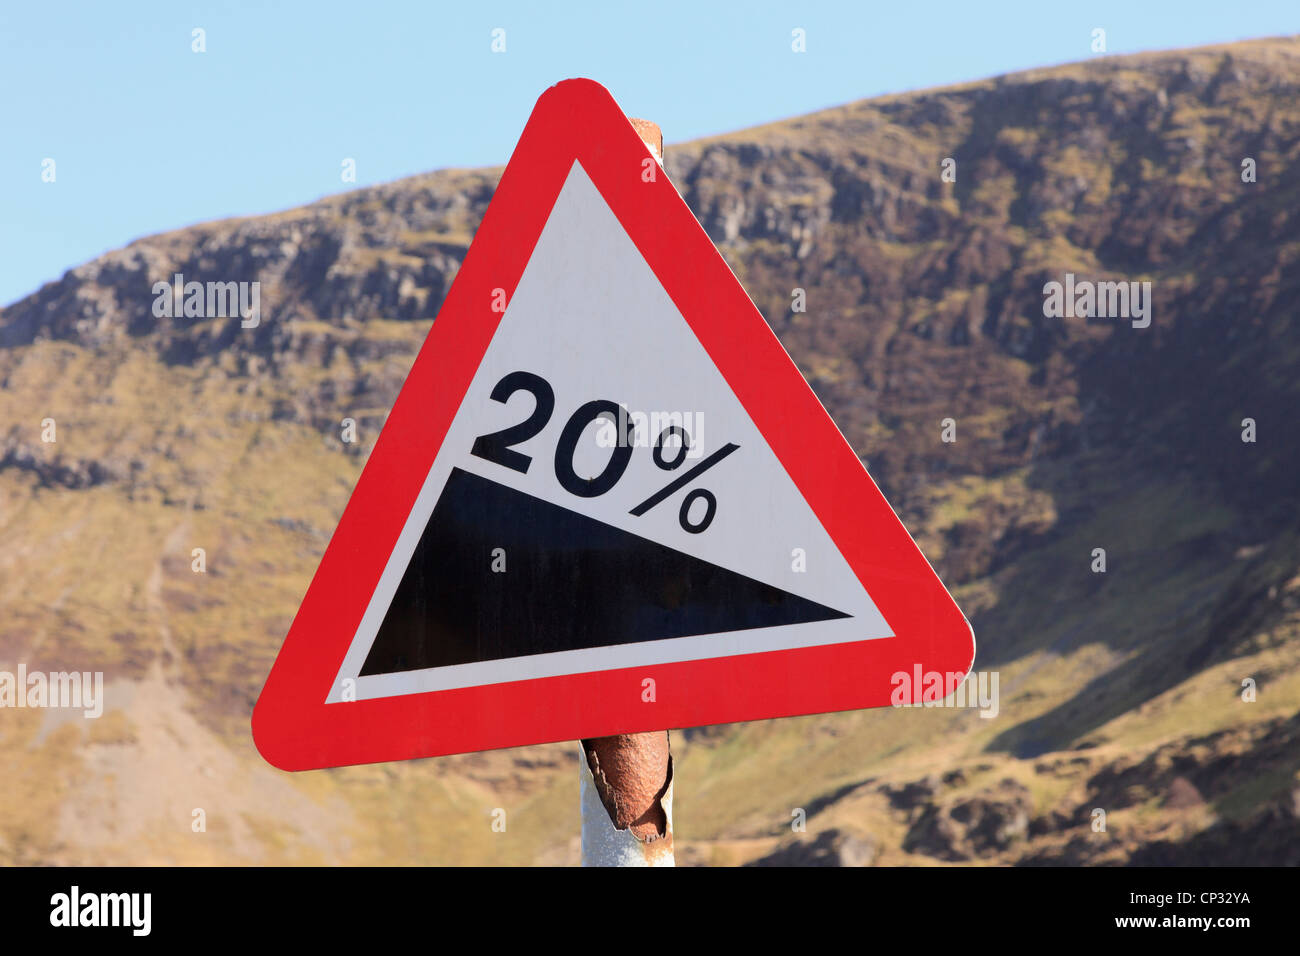 Red triangular steep slope 20% gradient warning sign on a mountain road in the mountains. Newlands Pass, Cumbria, - Stock Image